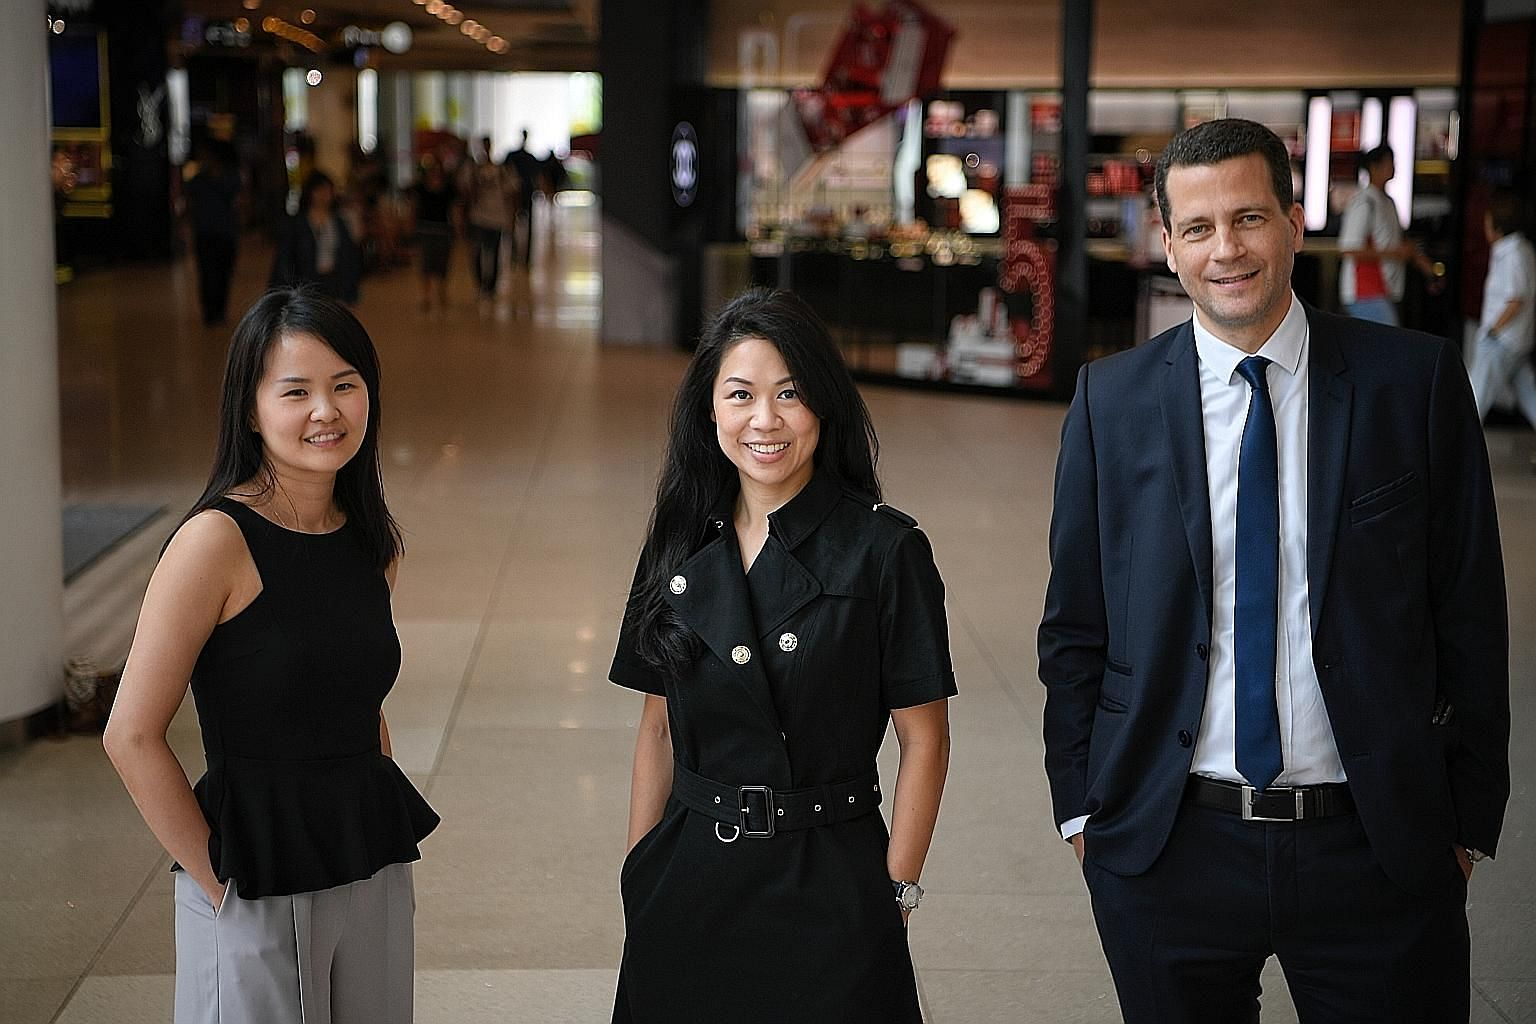 The team behind The Break Away Holiday Charity: (From left) Ms Minz Xu, Madam Sharin Lim and her husband, Mr Andrea Meierhofer. The charity works with family service centres to reward needy families who are trying their best to resolve their problems